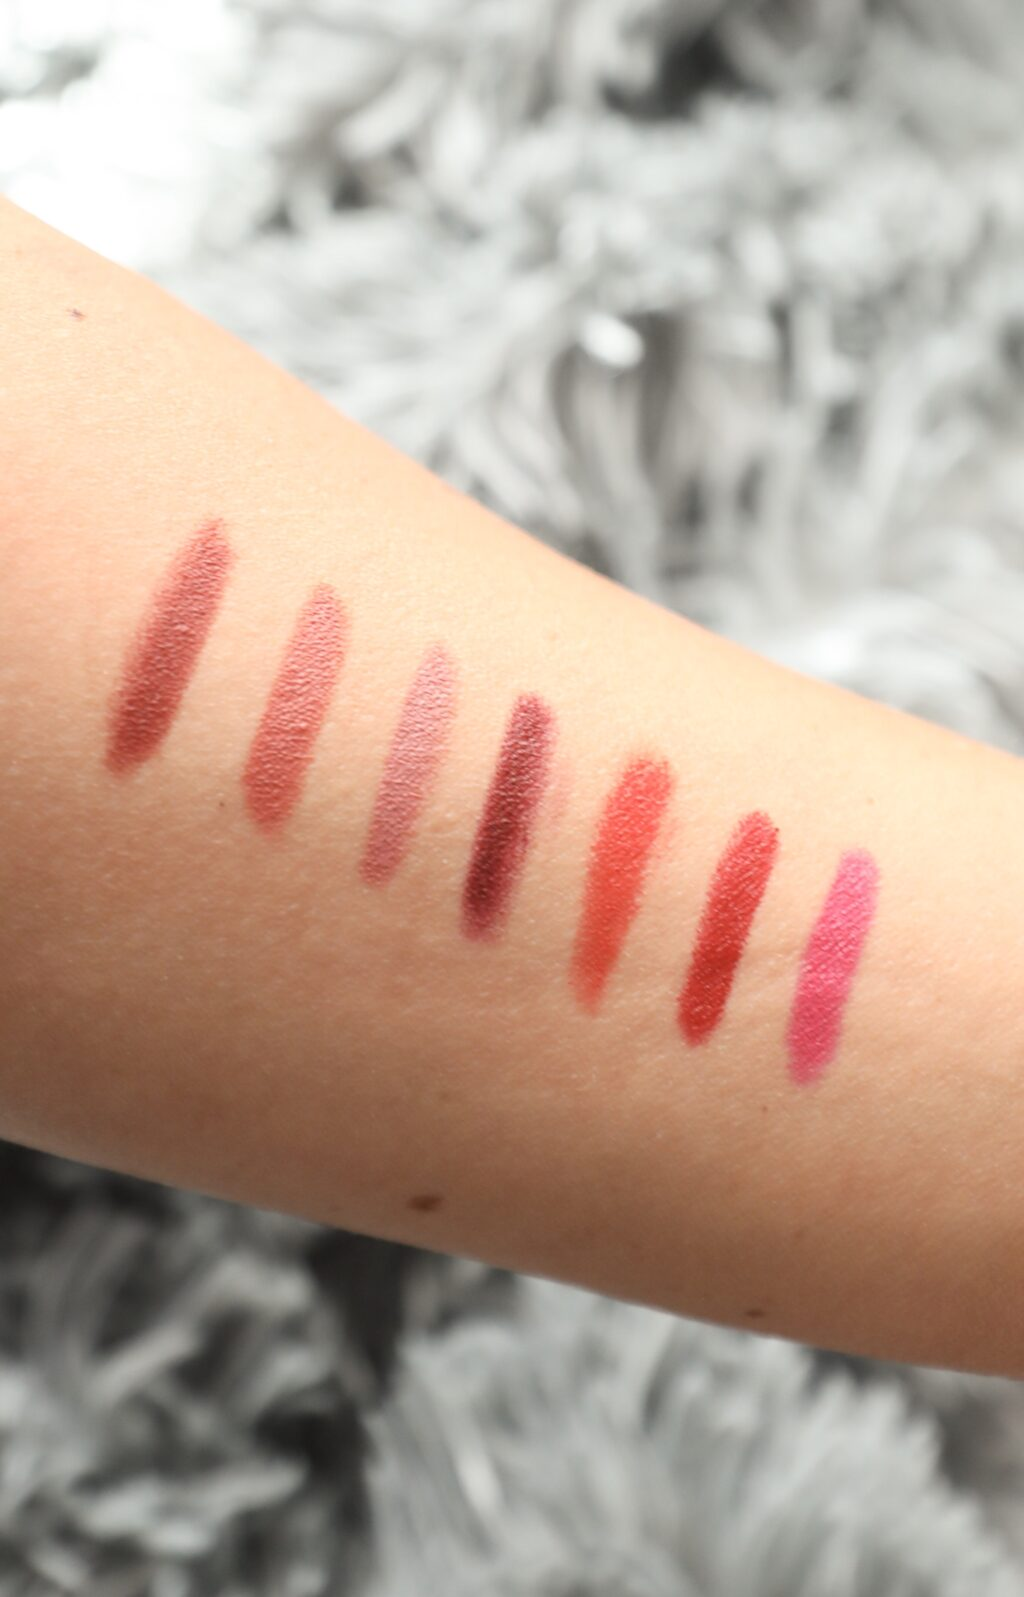 Maybelline Super Stay swatches with Twist Me Pretty